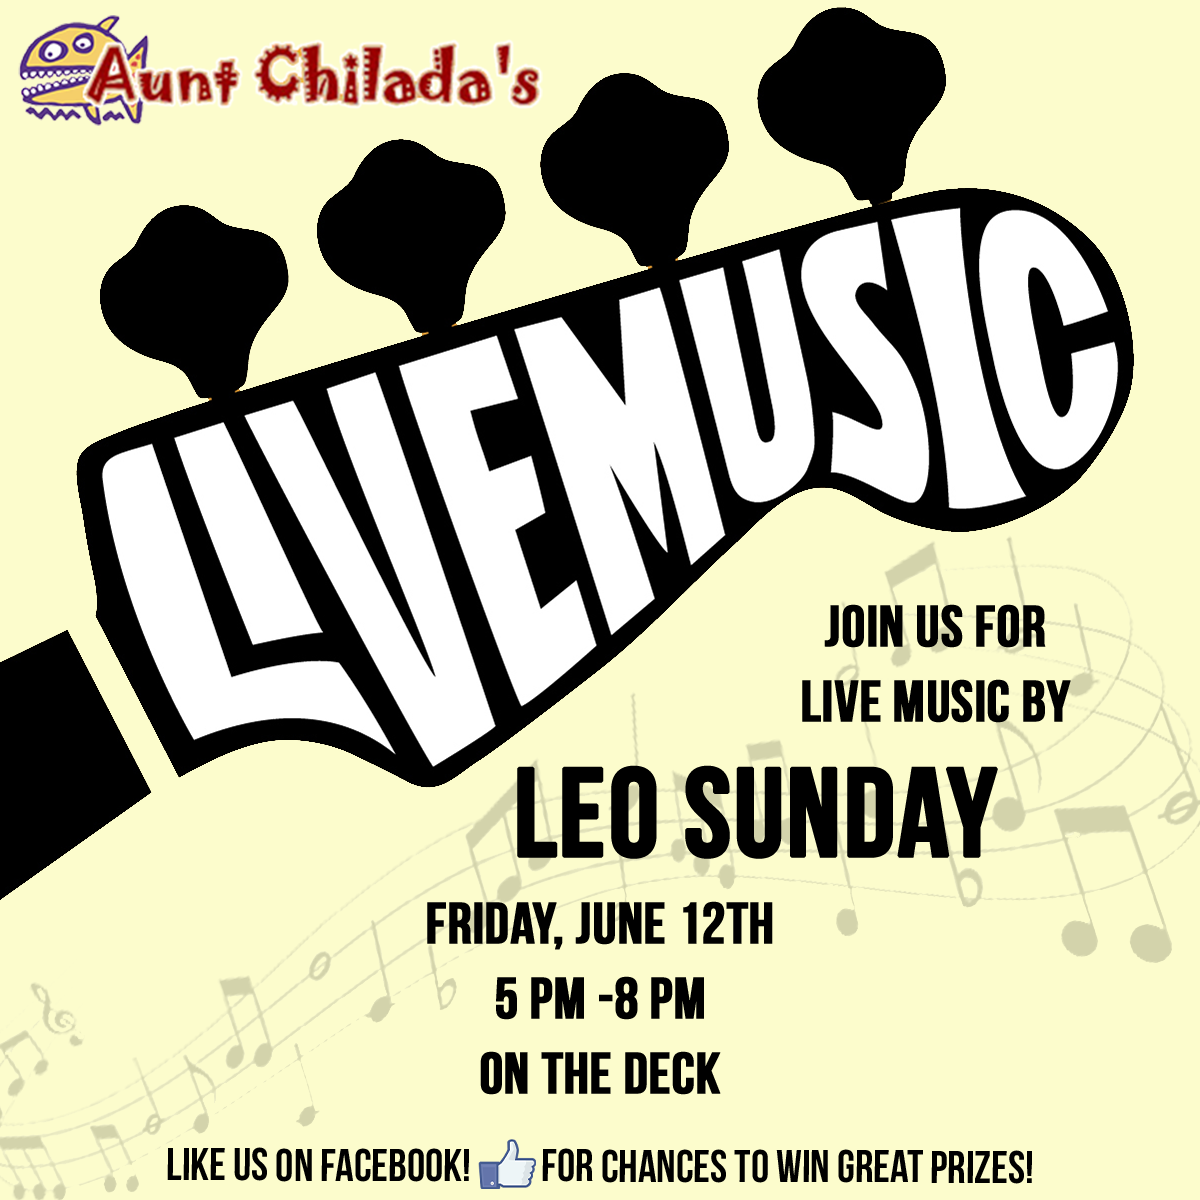 Live music by Leo Sunday on Friday June 12th from 5 to 8 pm on the deck